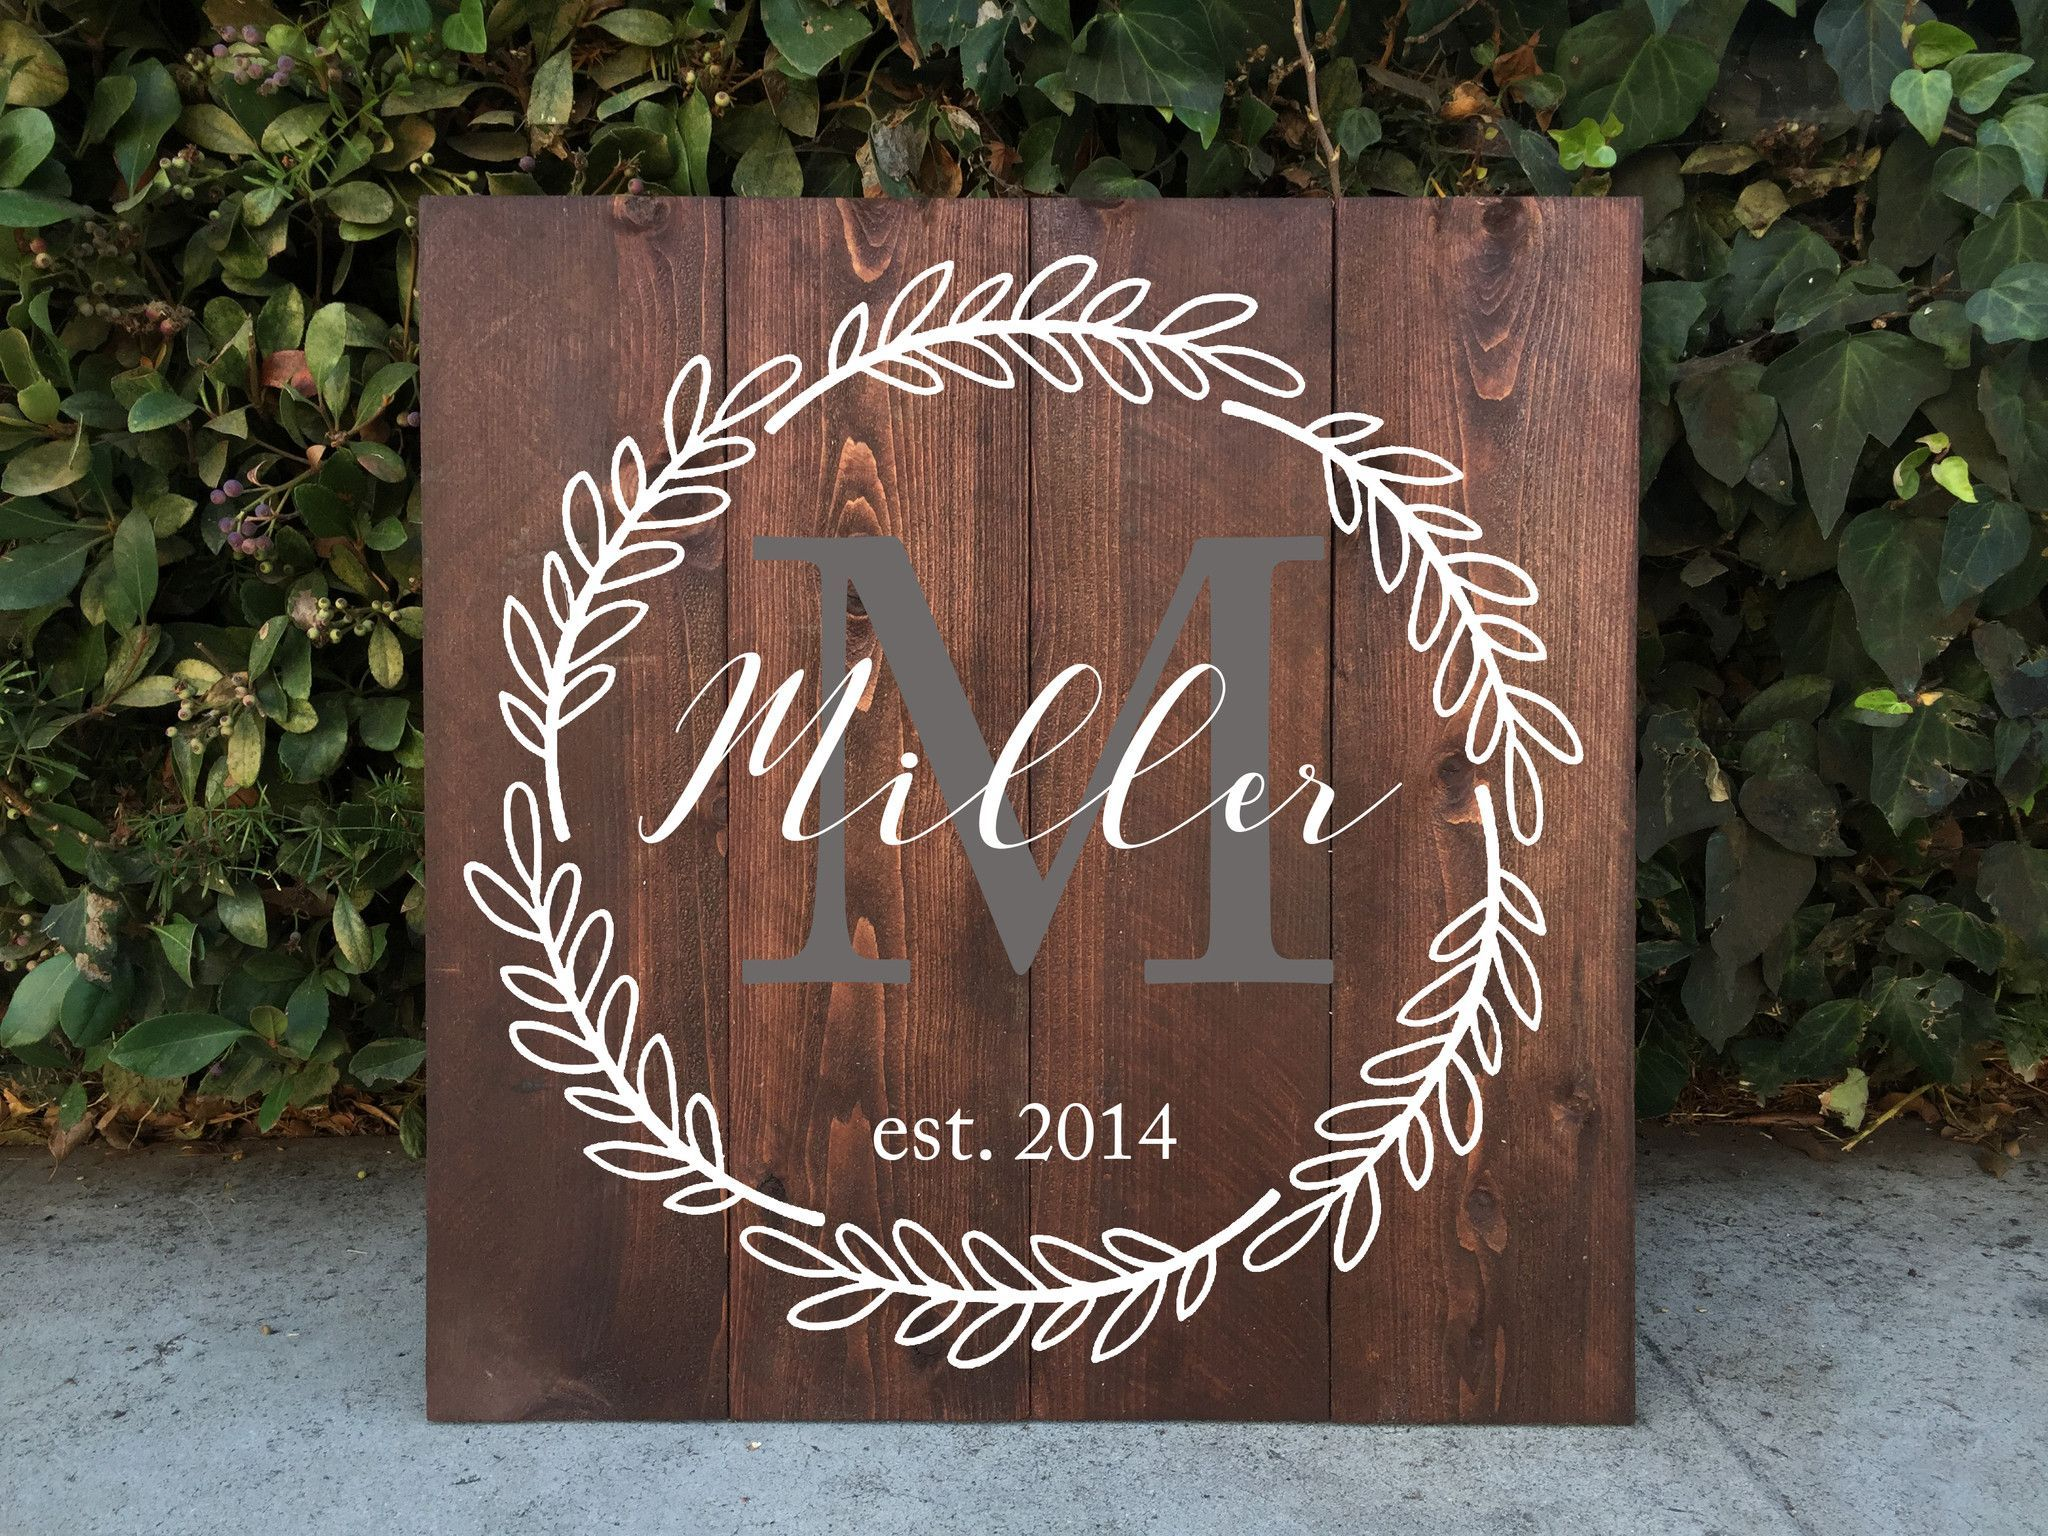 Personalized Wood Signs Home Decor Family Monogram Wooden Sign Rustic Home  Decor Family Crest 40